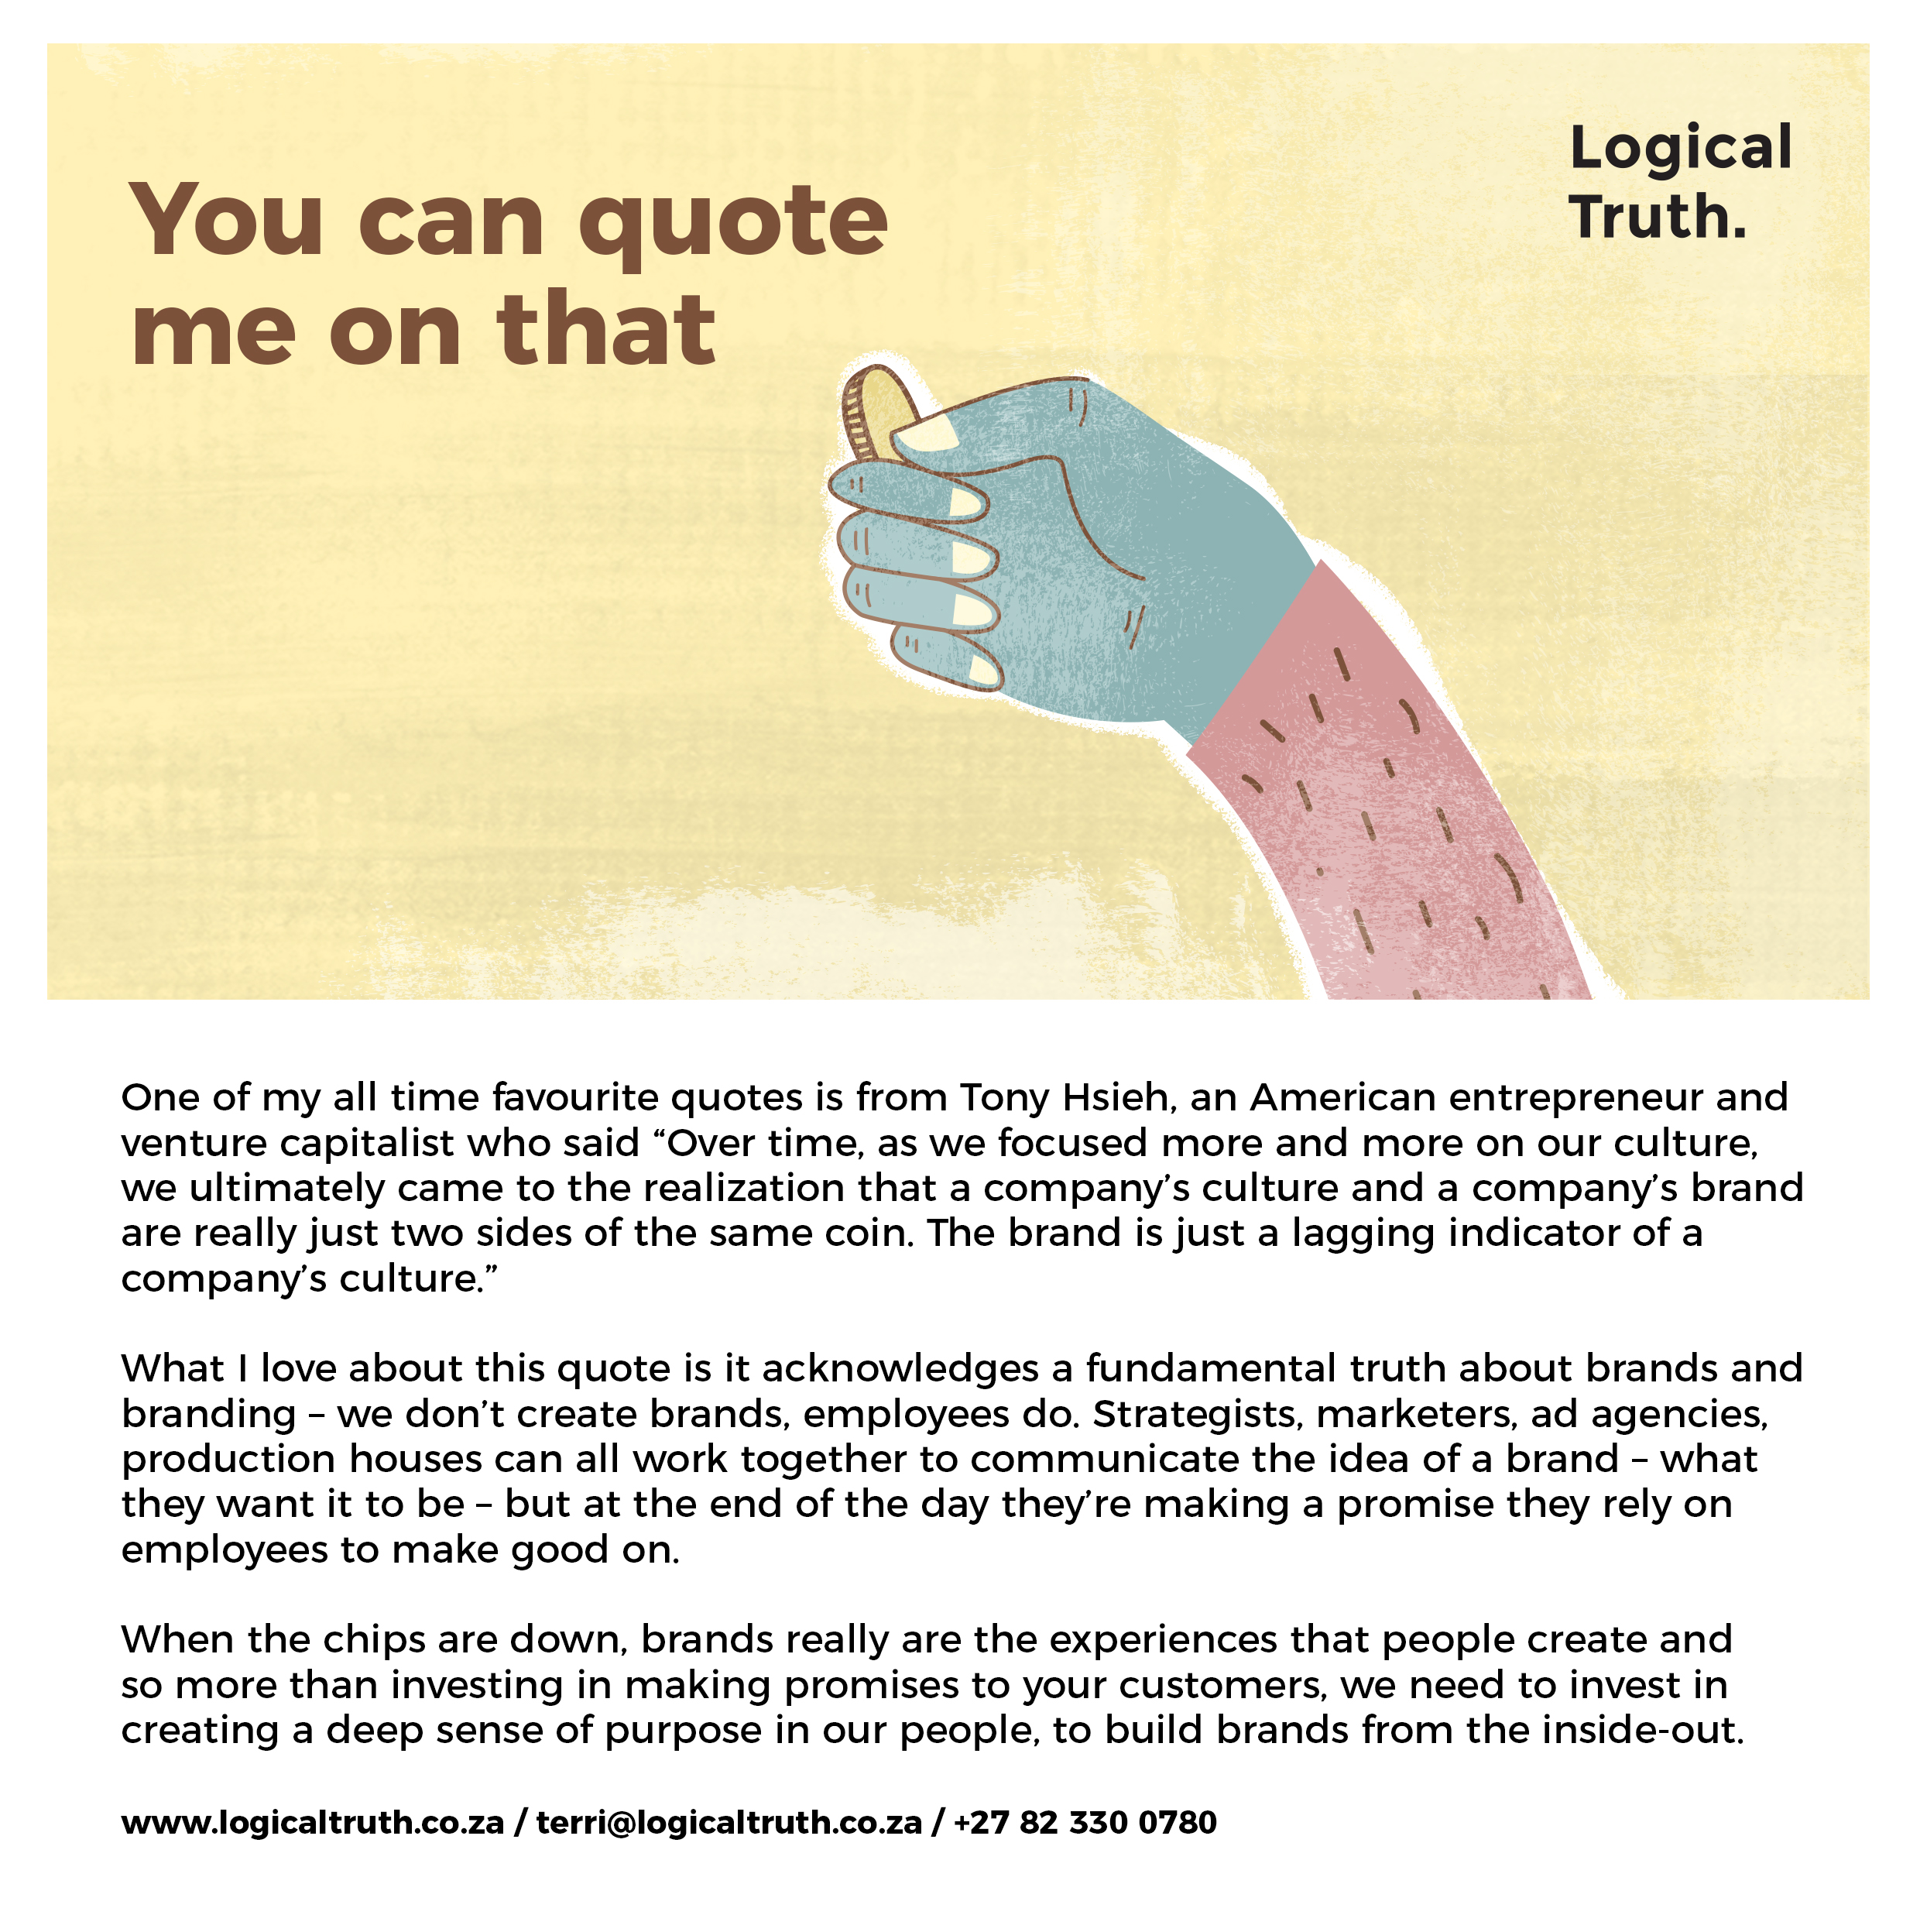 Postcard 5 coin - Logical Truth - You can quote me on that